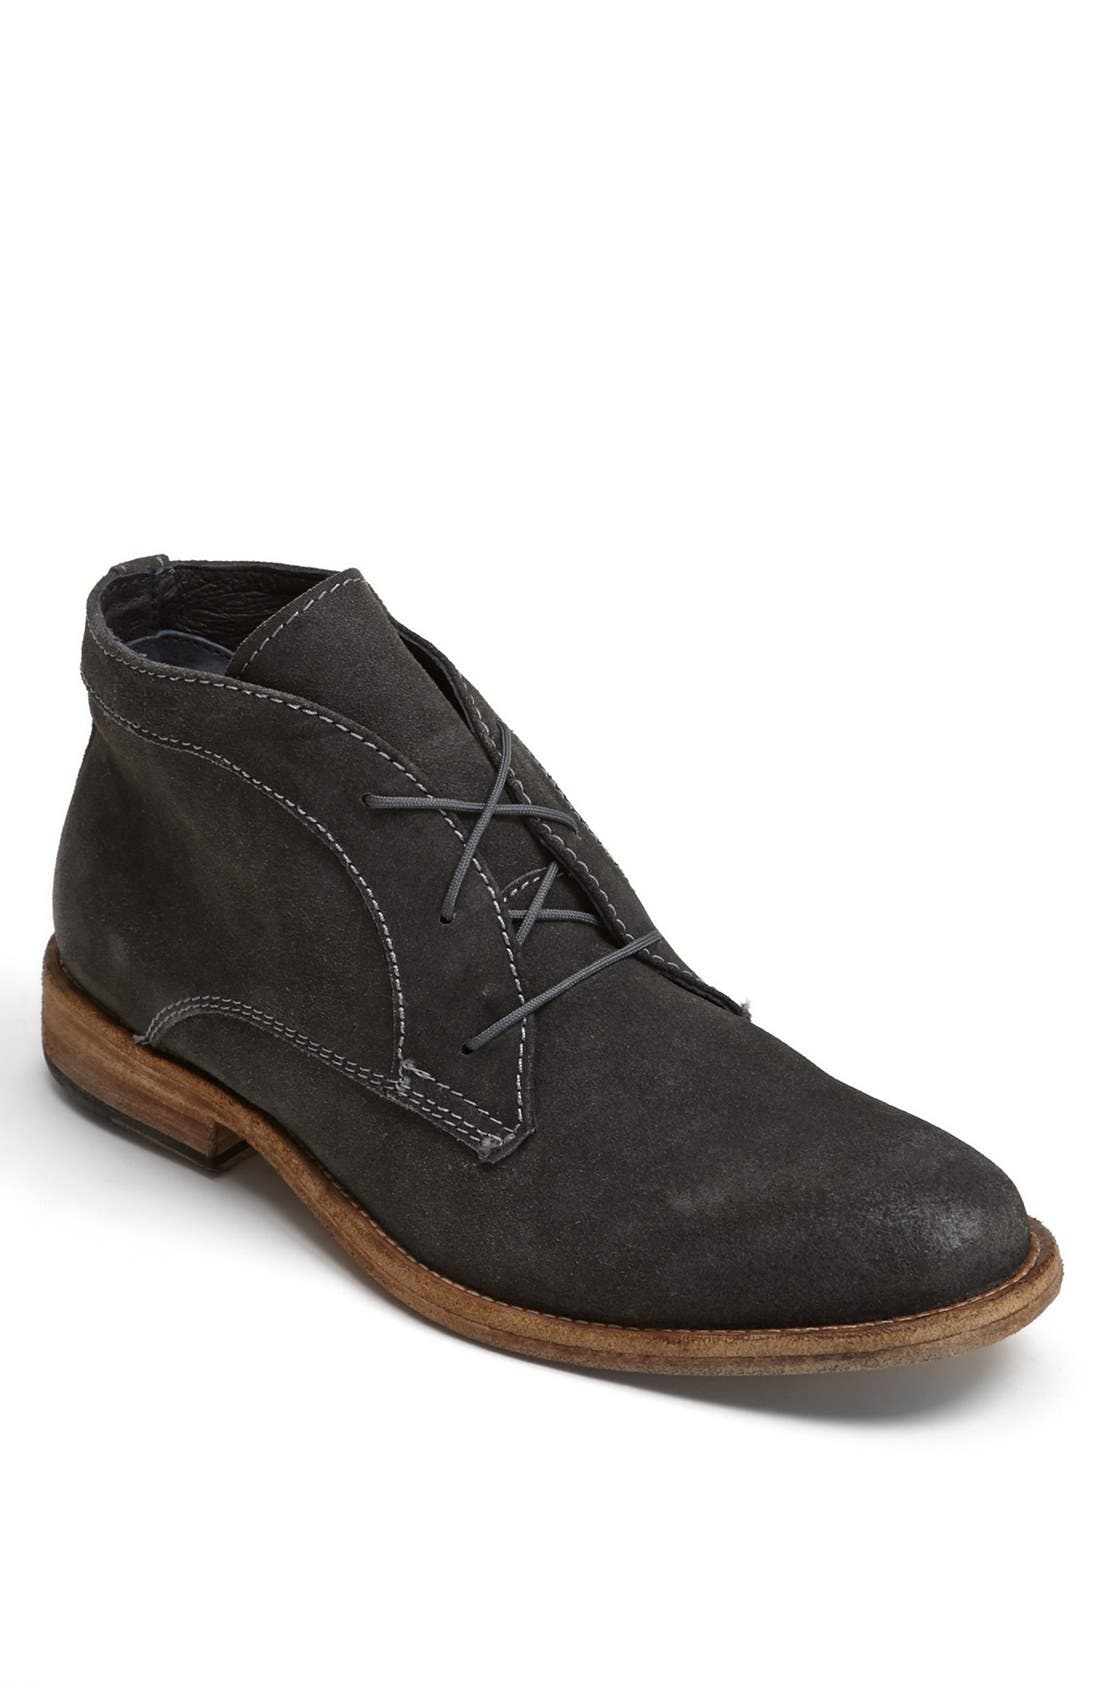 Main Image - J.D. Fisk 'Krakow' Chukka Boot (Men)